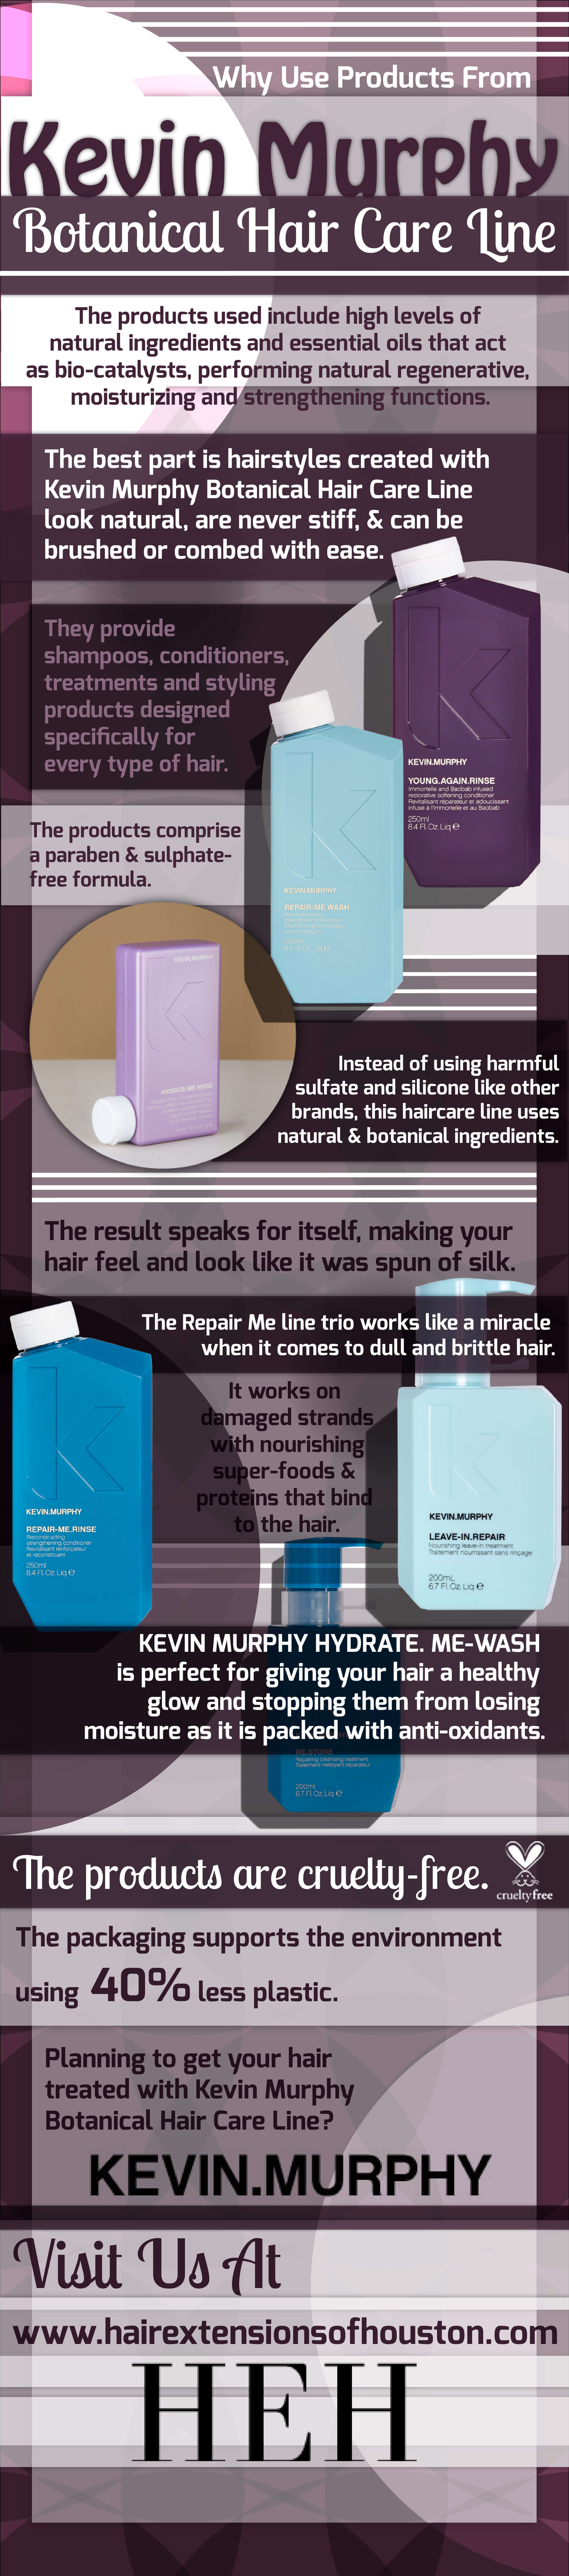 Why Use Products From Kevin Murphy